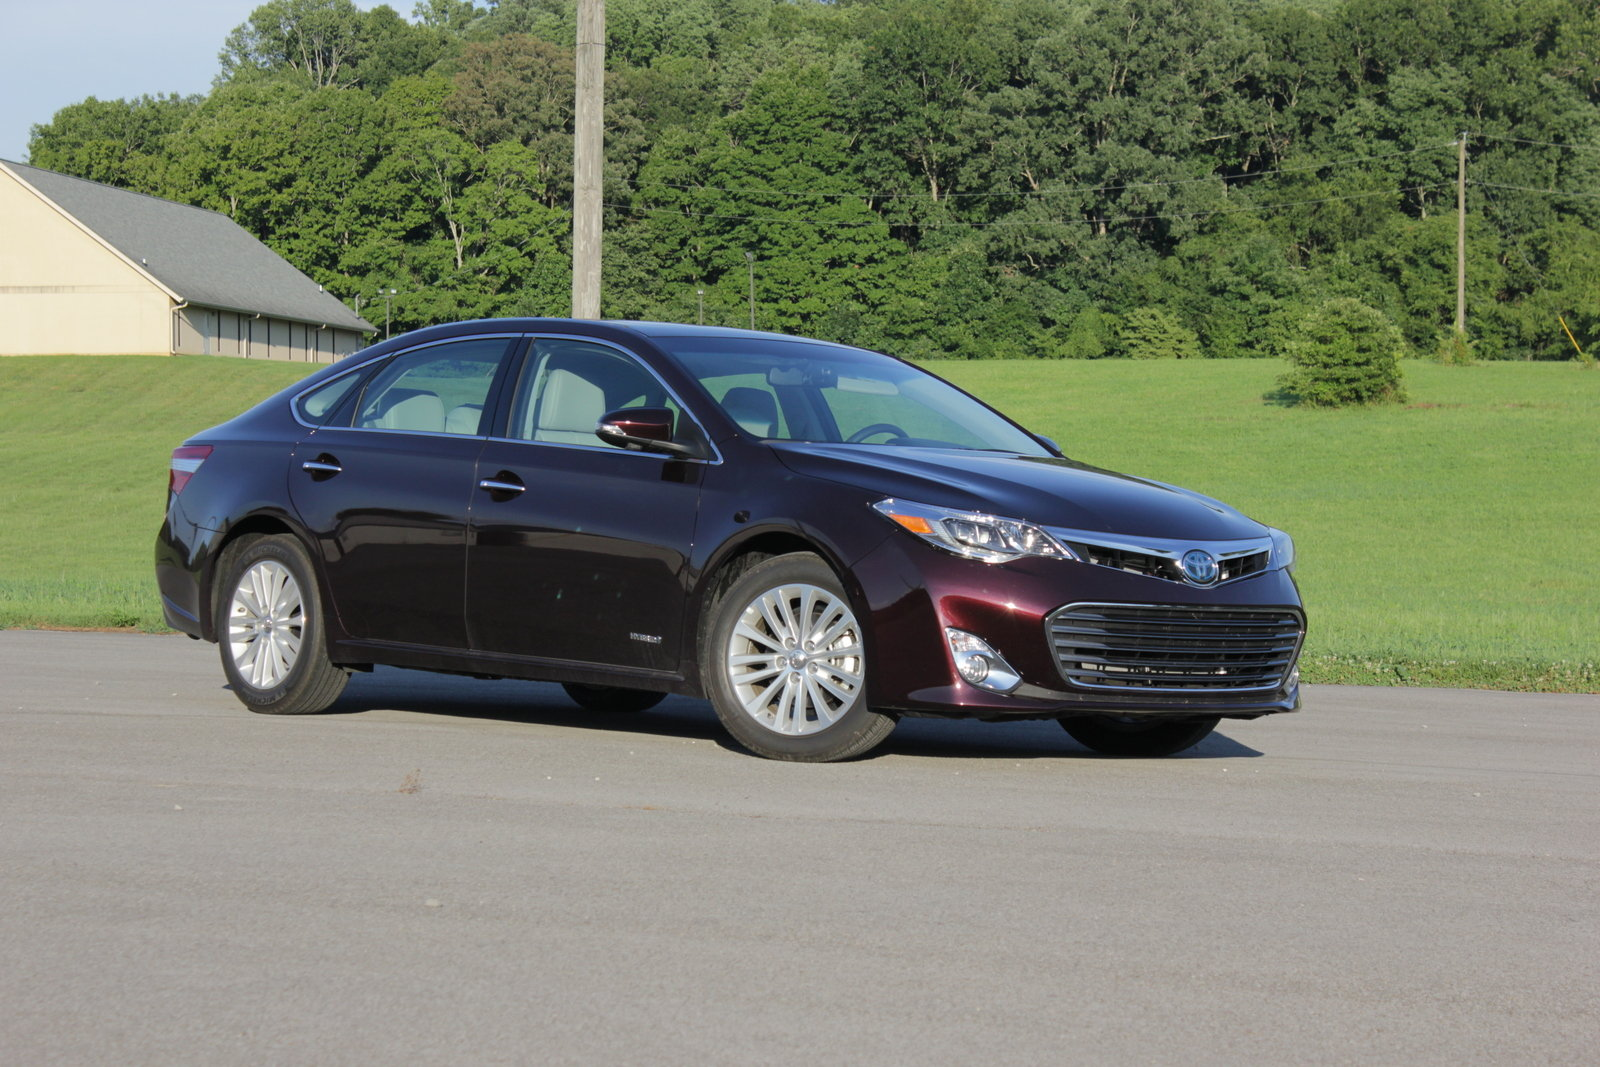 2014 toyota avalon hybrid driven review top speed. Black Bedroom Furniture Sets. Home Design Ideas